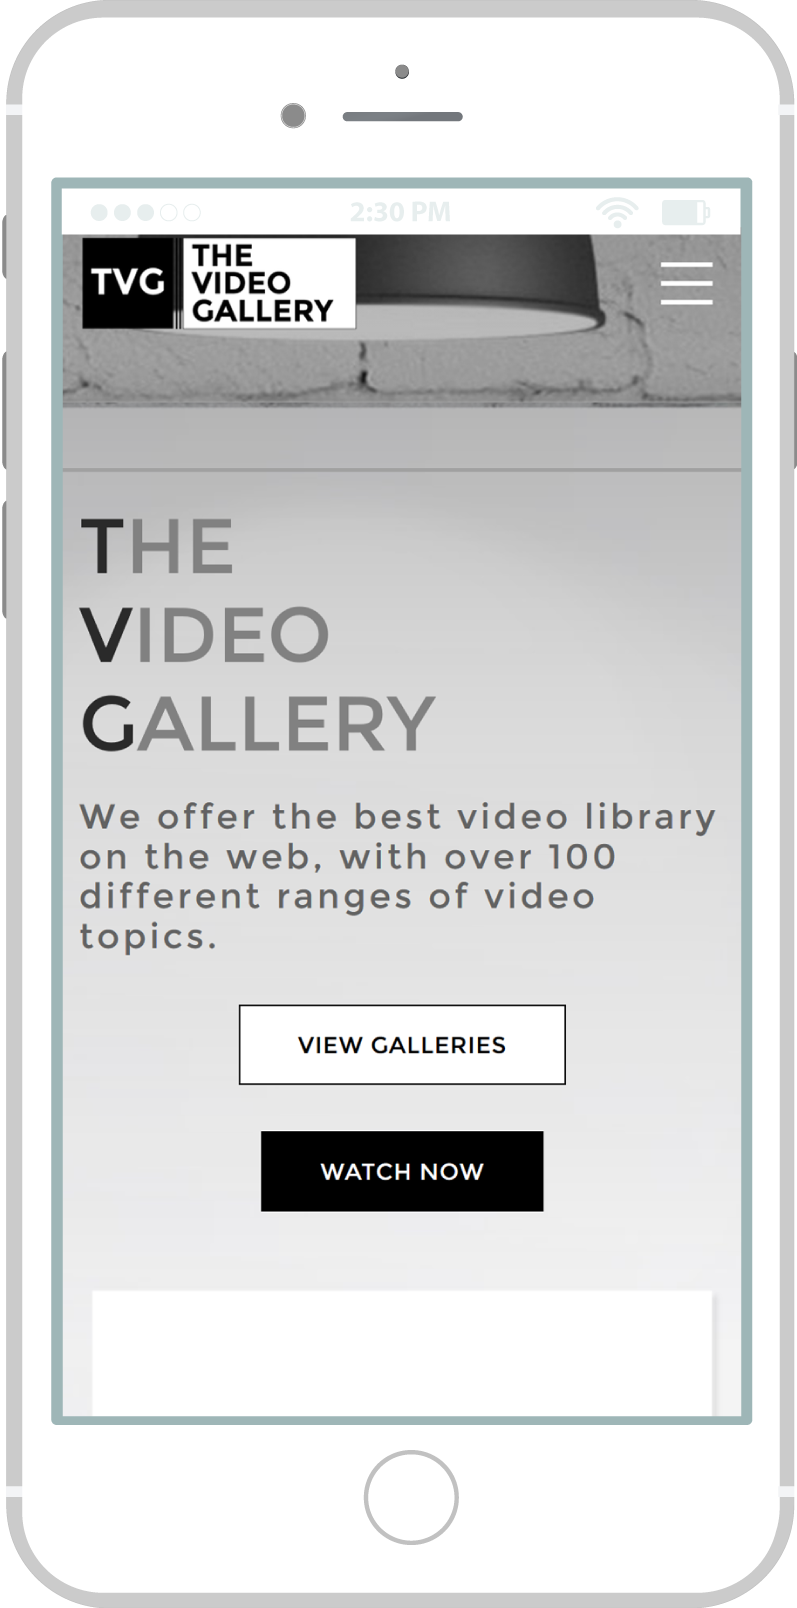 All-In-One Online Video Sales Website - The Video Gallery Mobile View 1 Example